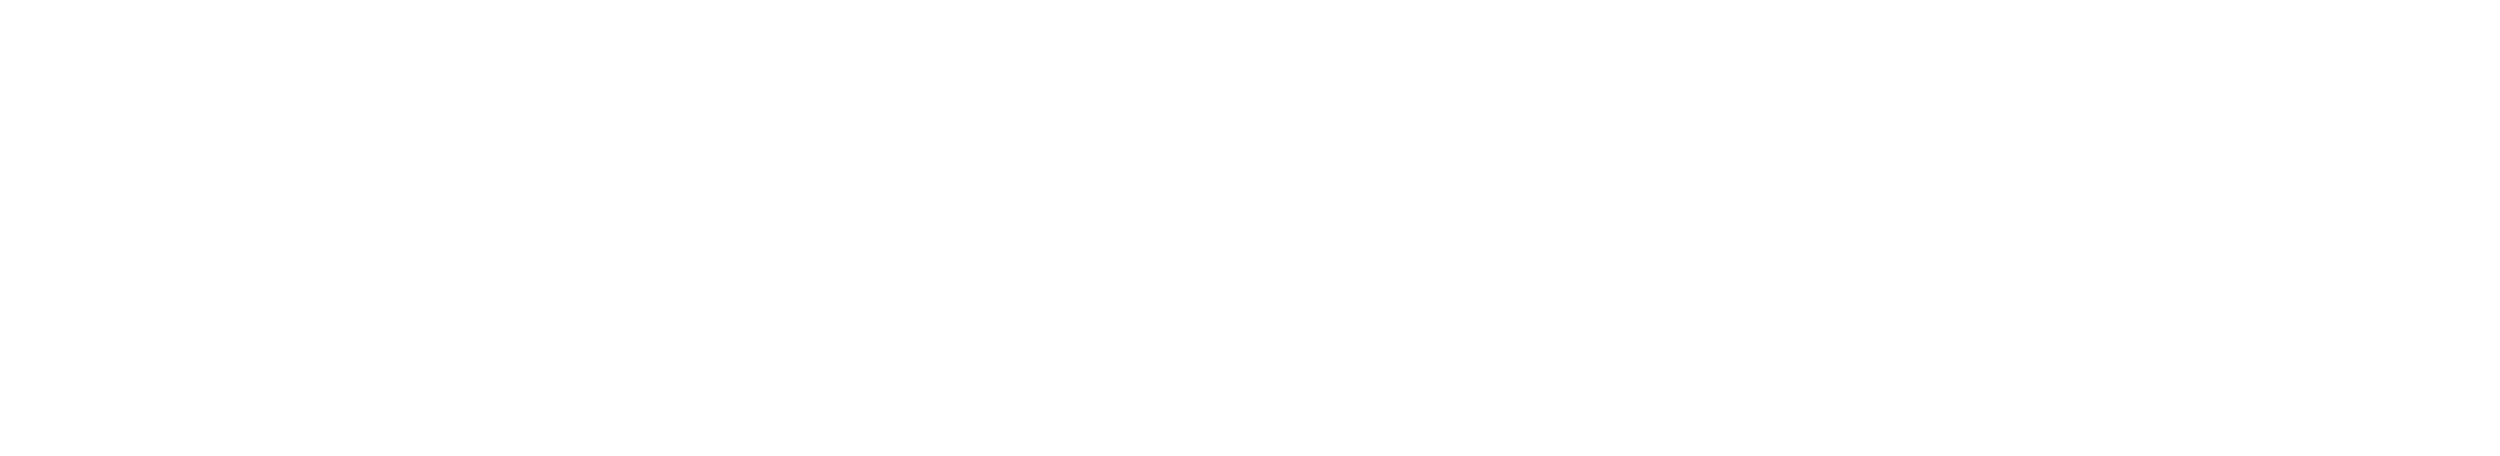 Crayola-Beauty-Logo